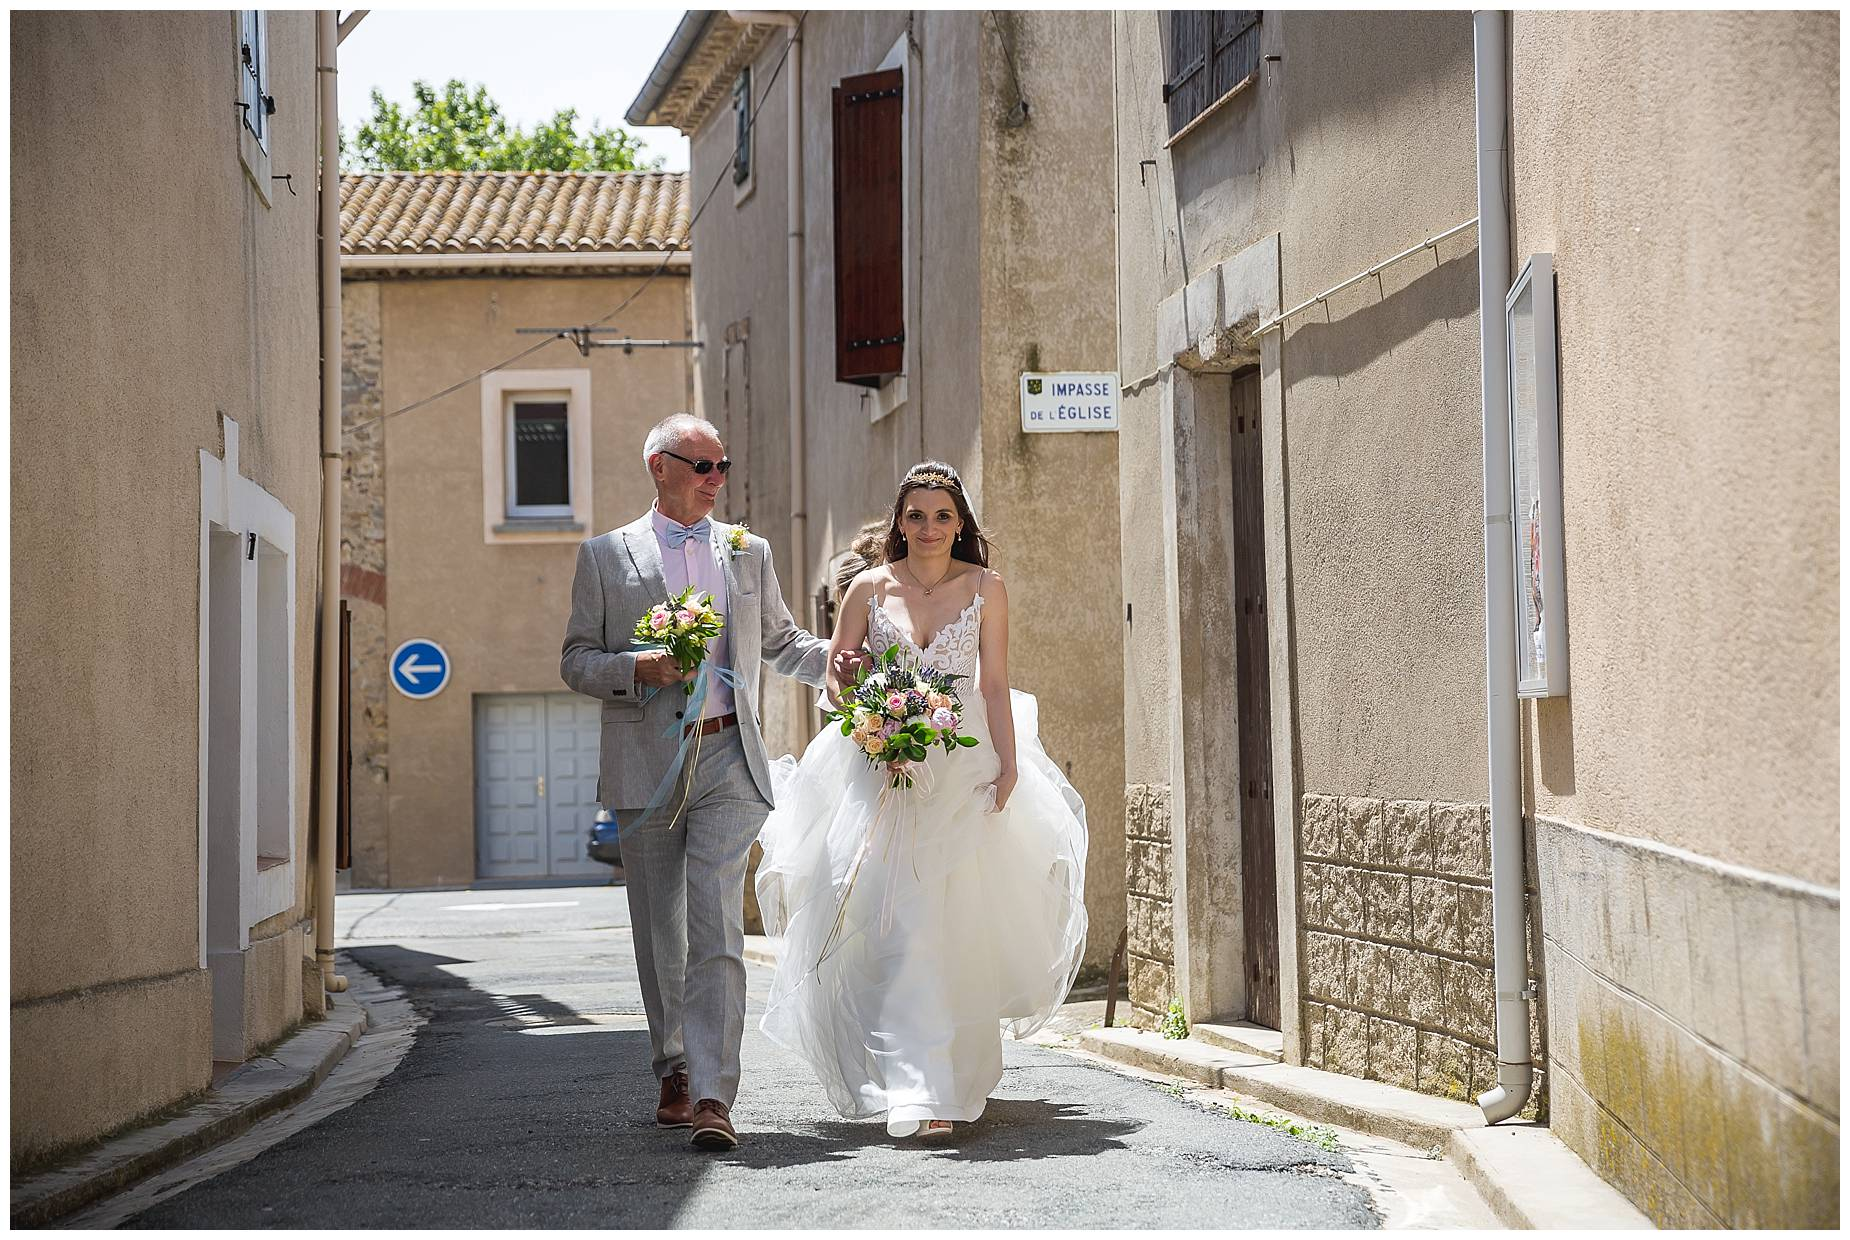 bride arrives at church wedding in France